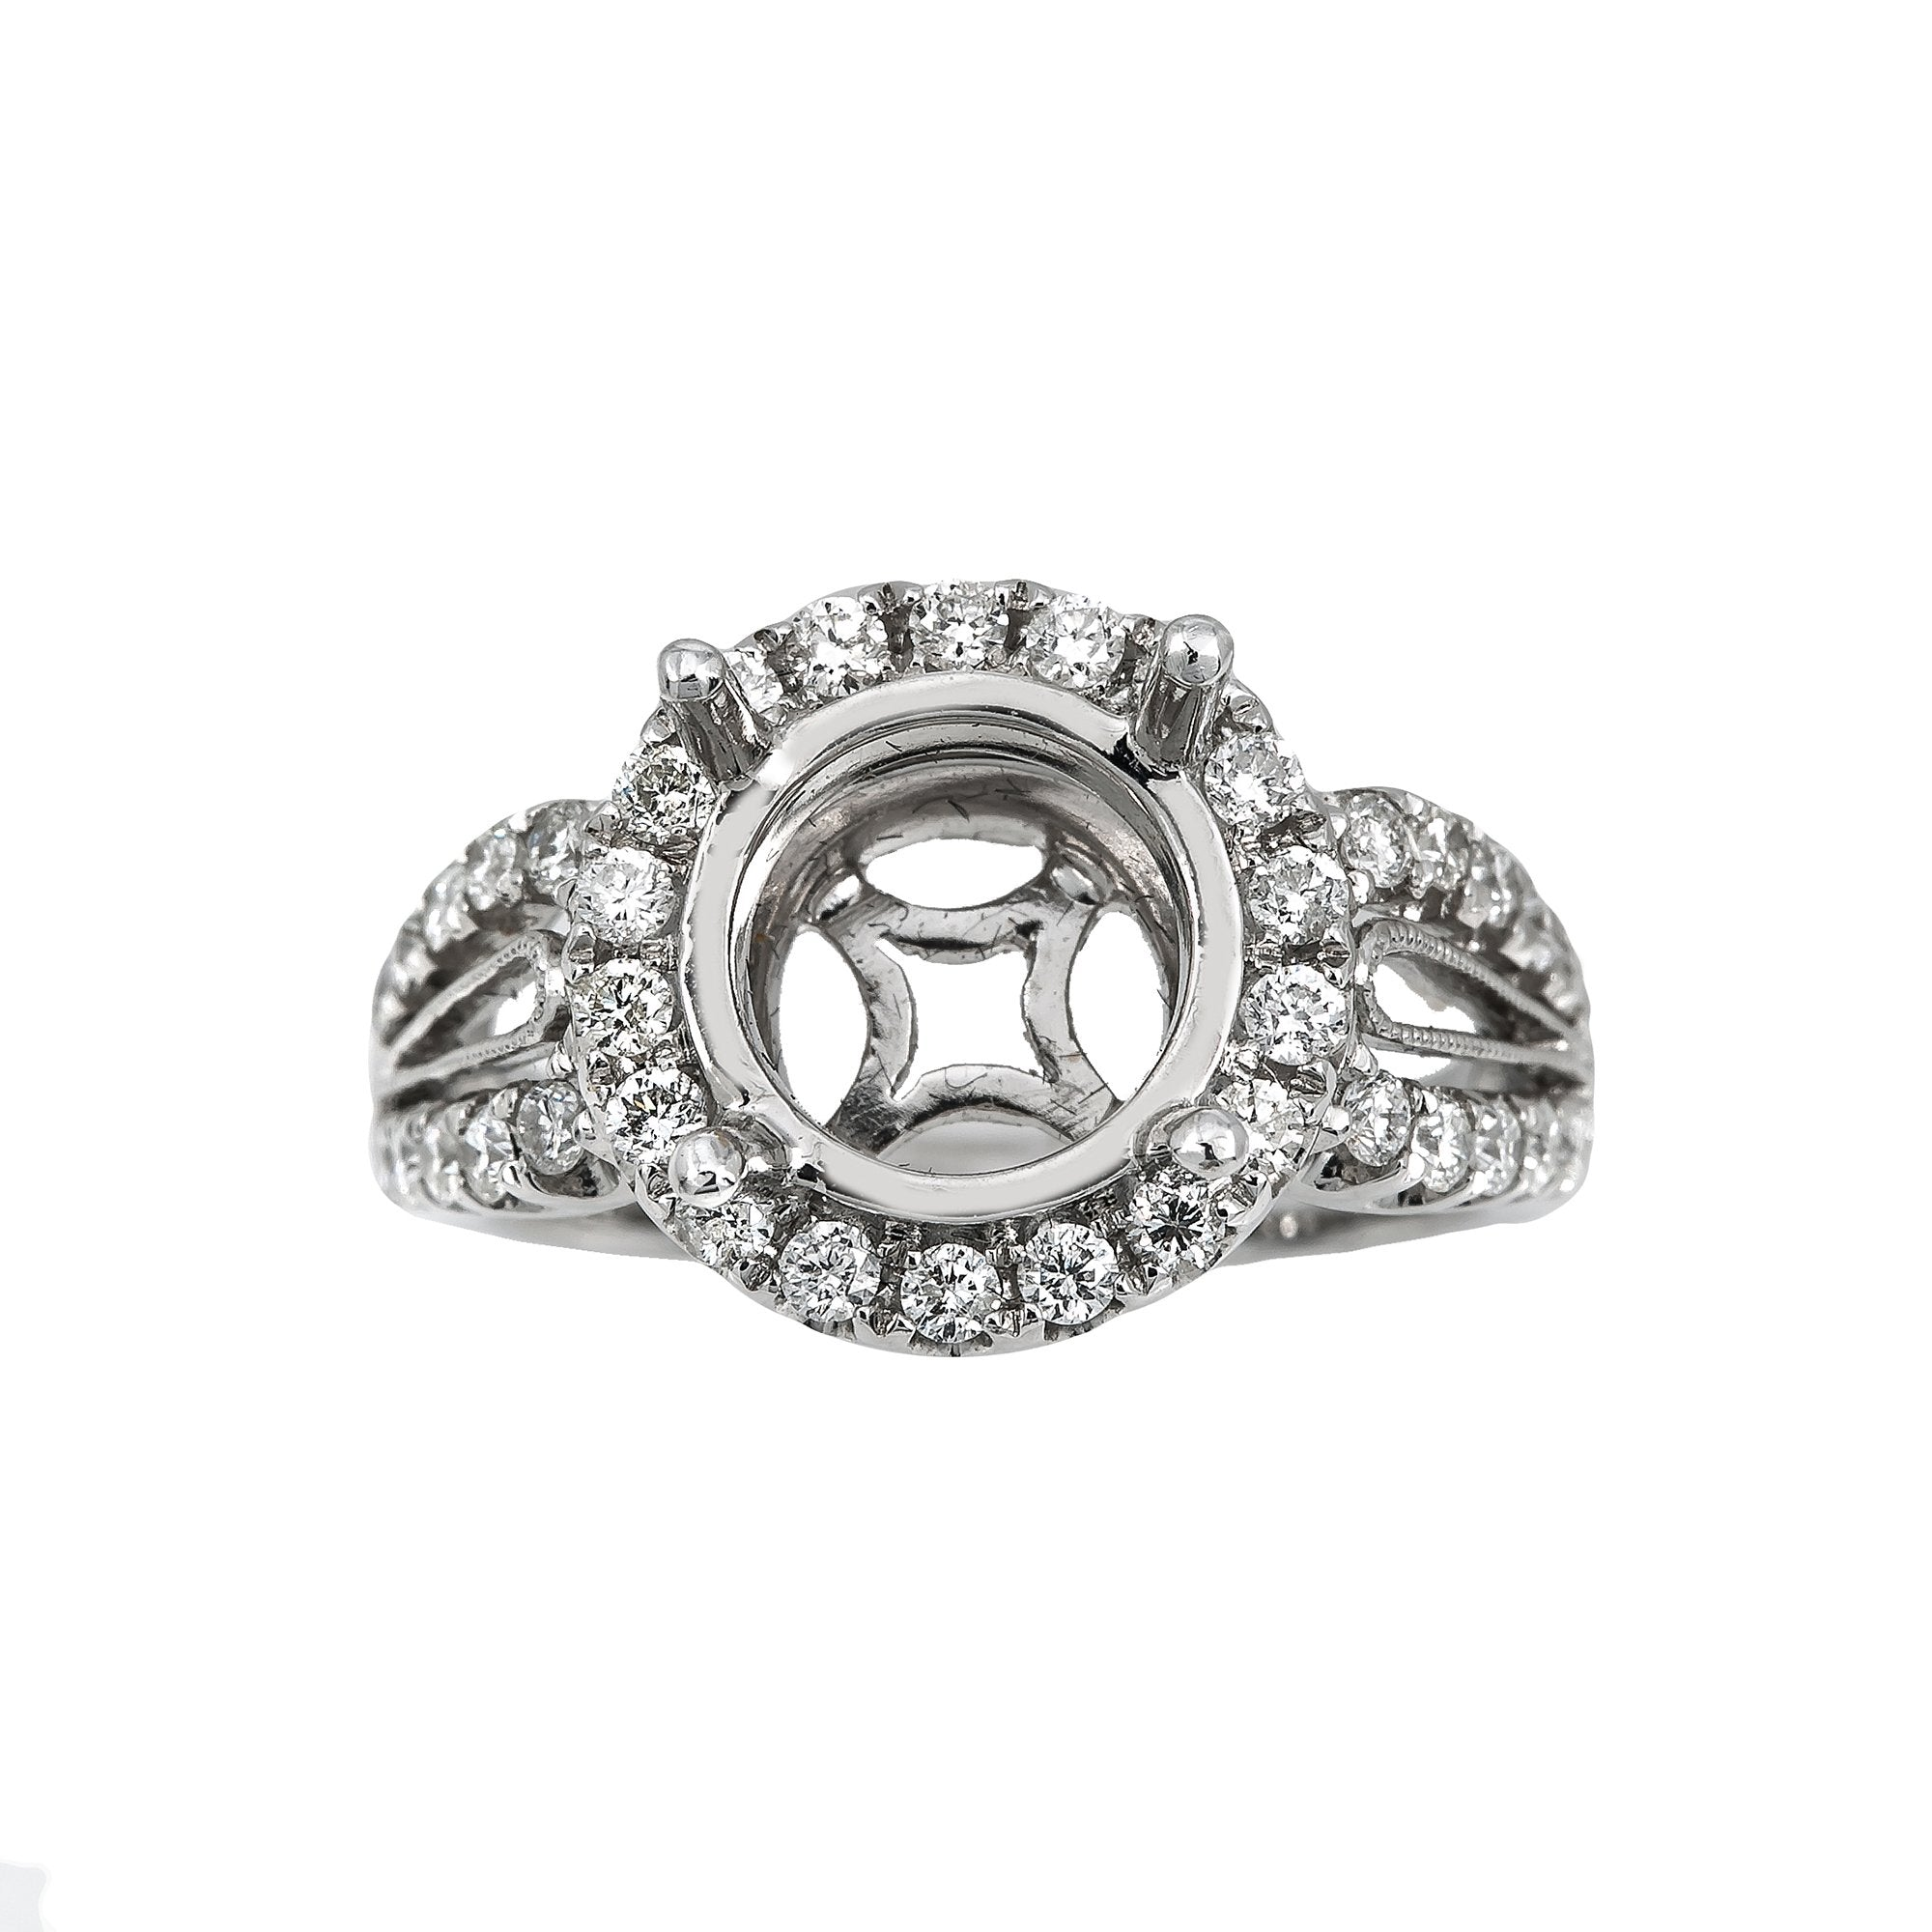 18K White Gold BJ8143R1 Women's Ring With 0.83 CT Diamonds